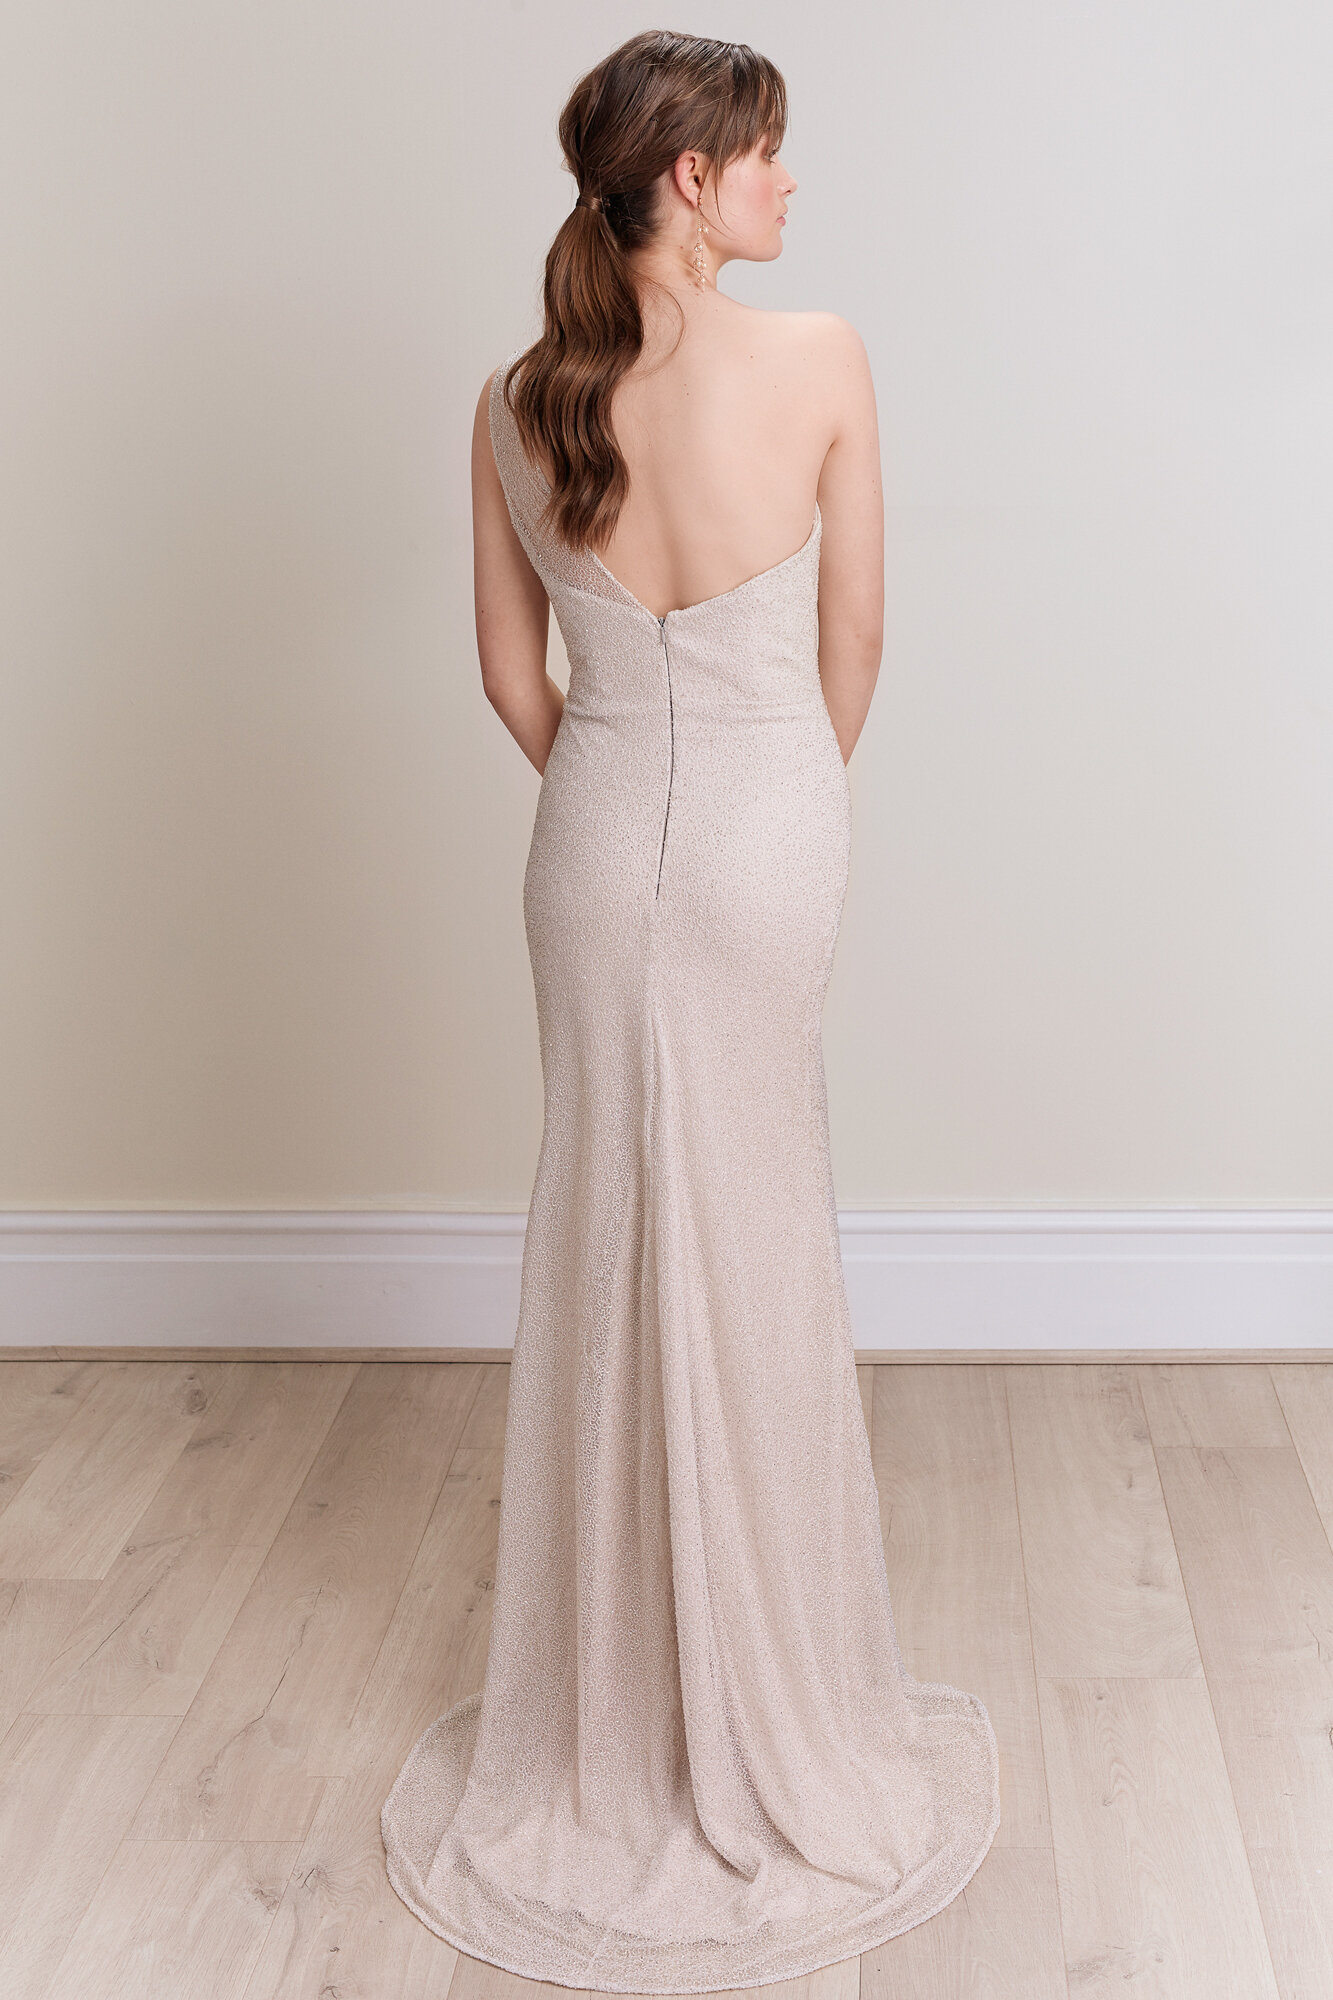 Sarina_Tavra_Bridal_Couture_2020_Collection_Madison_Gown_05